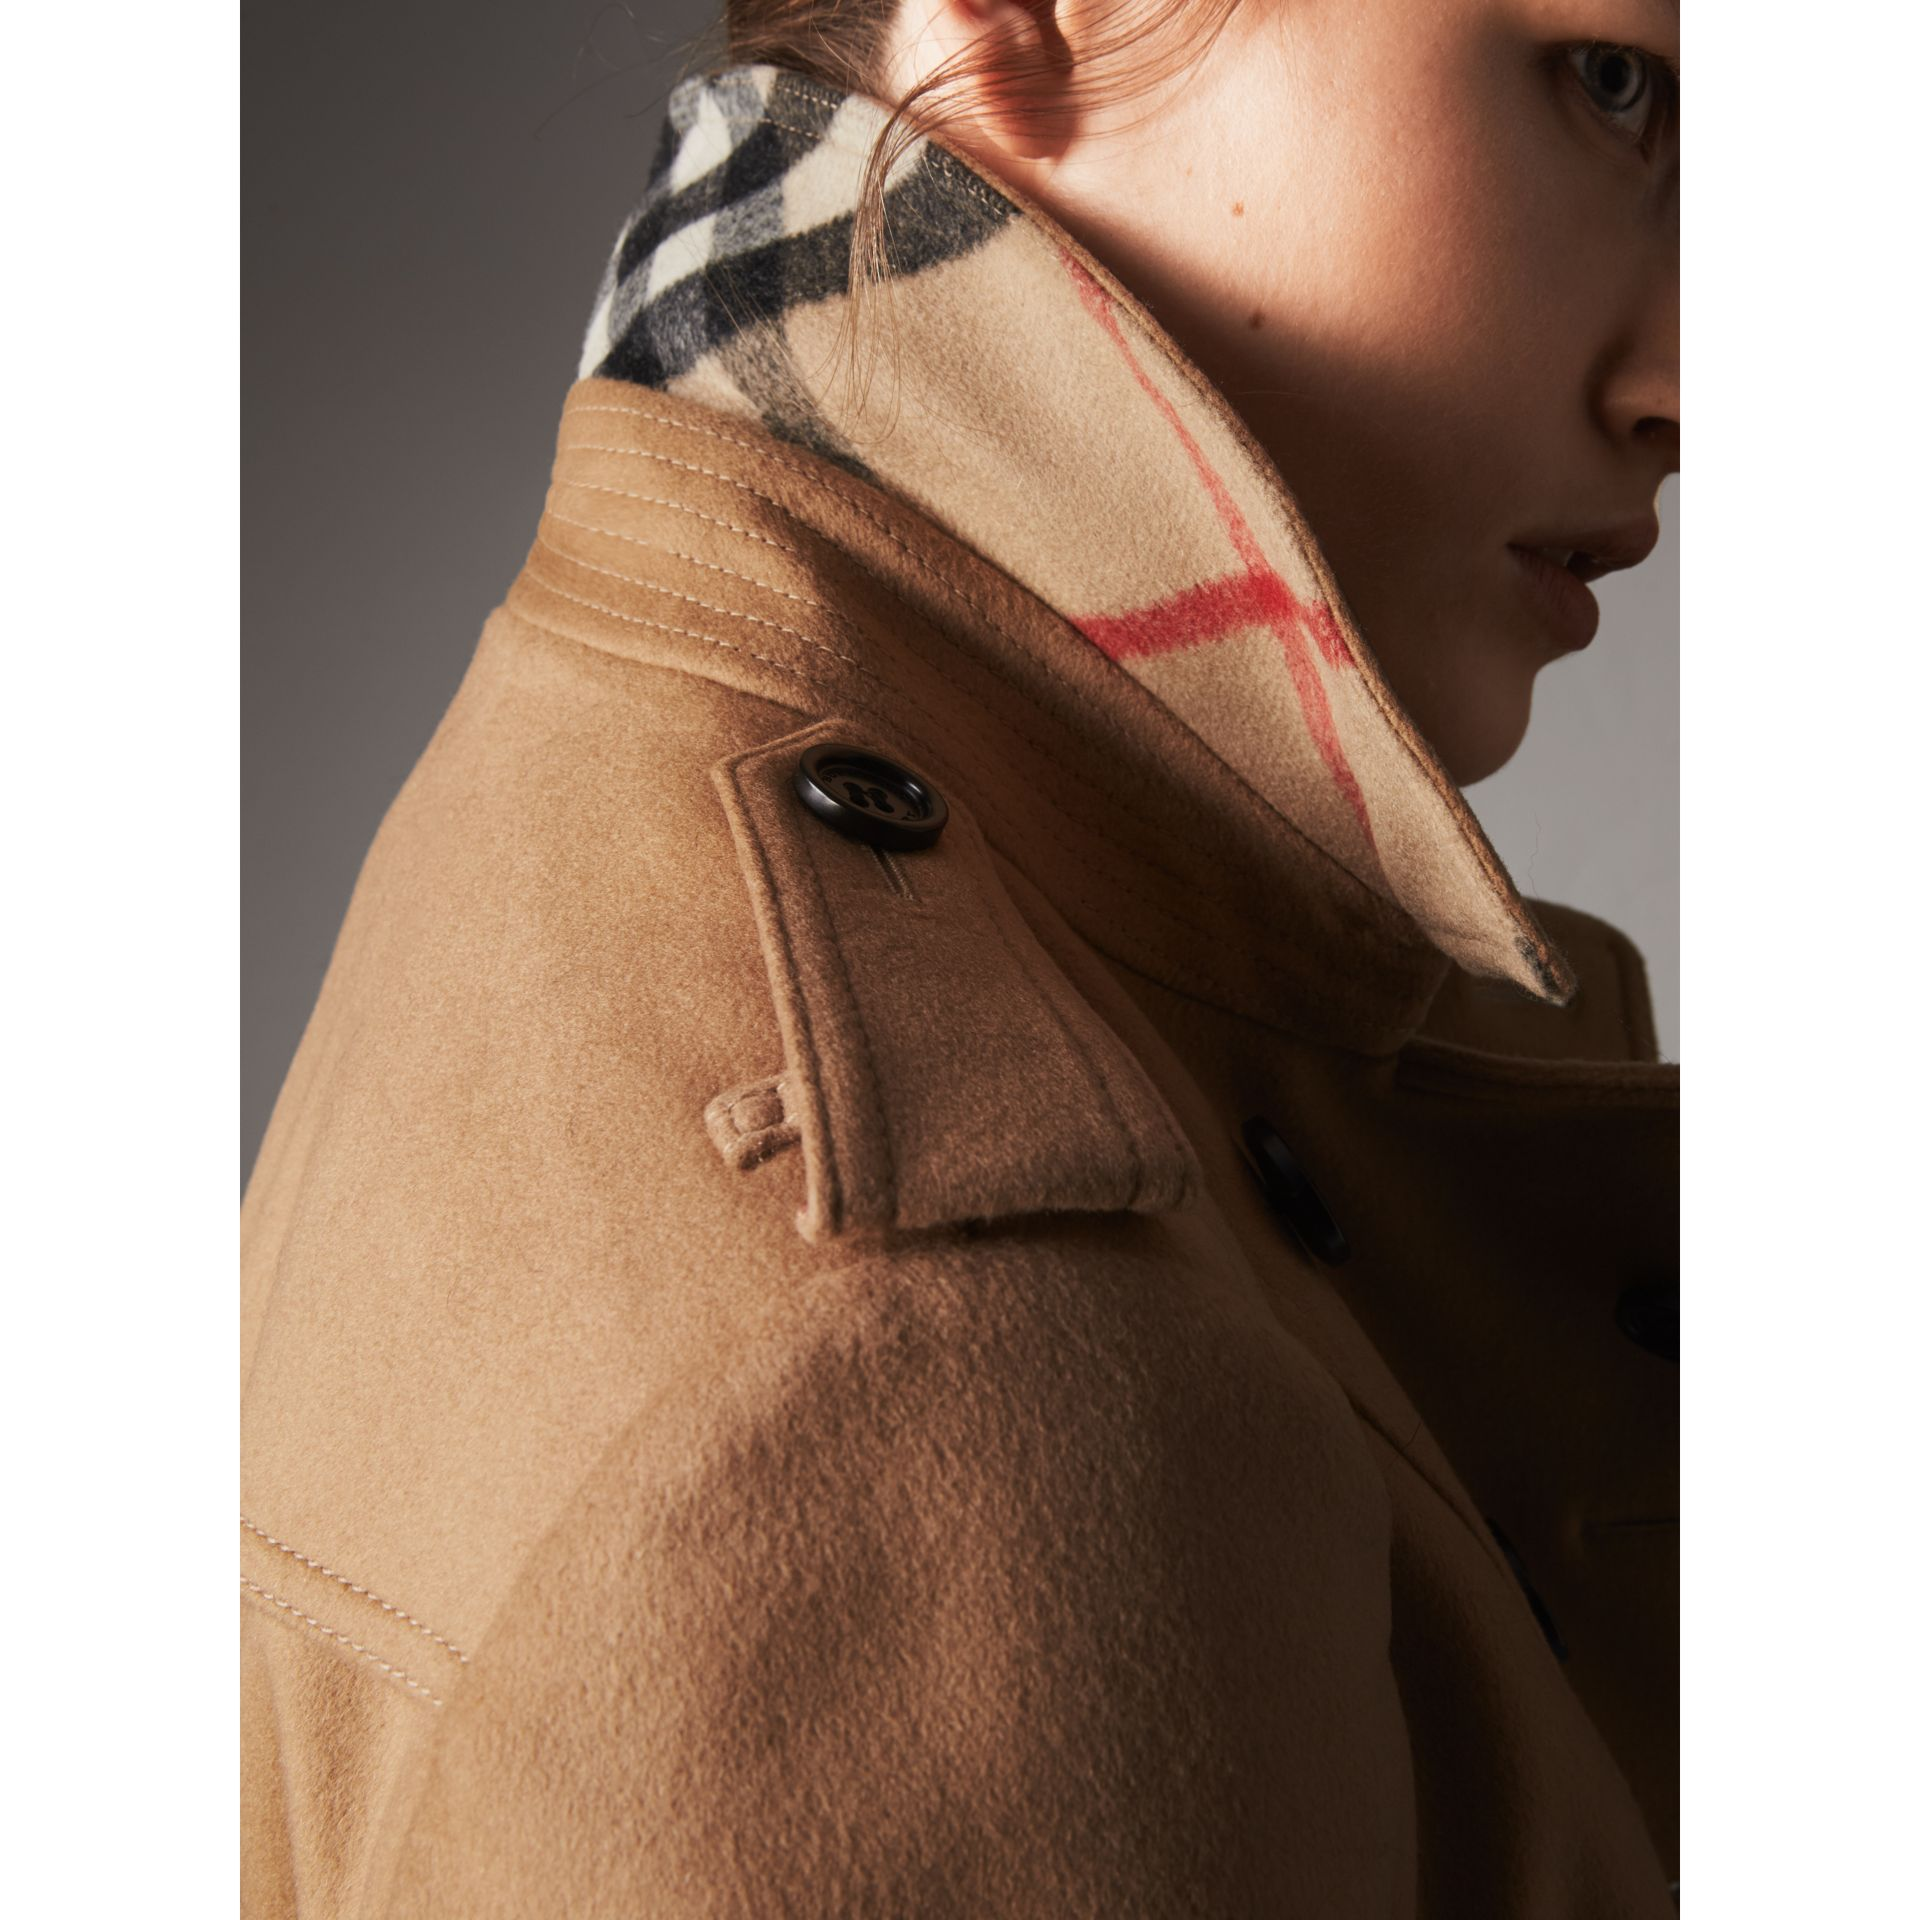 Wool Cashmere Trench Coat with Fur Collar in Camel - Women | Burberry United States - gallery image 4